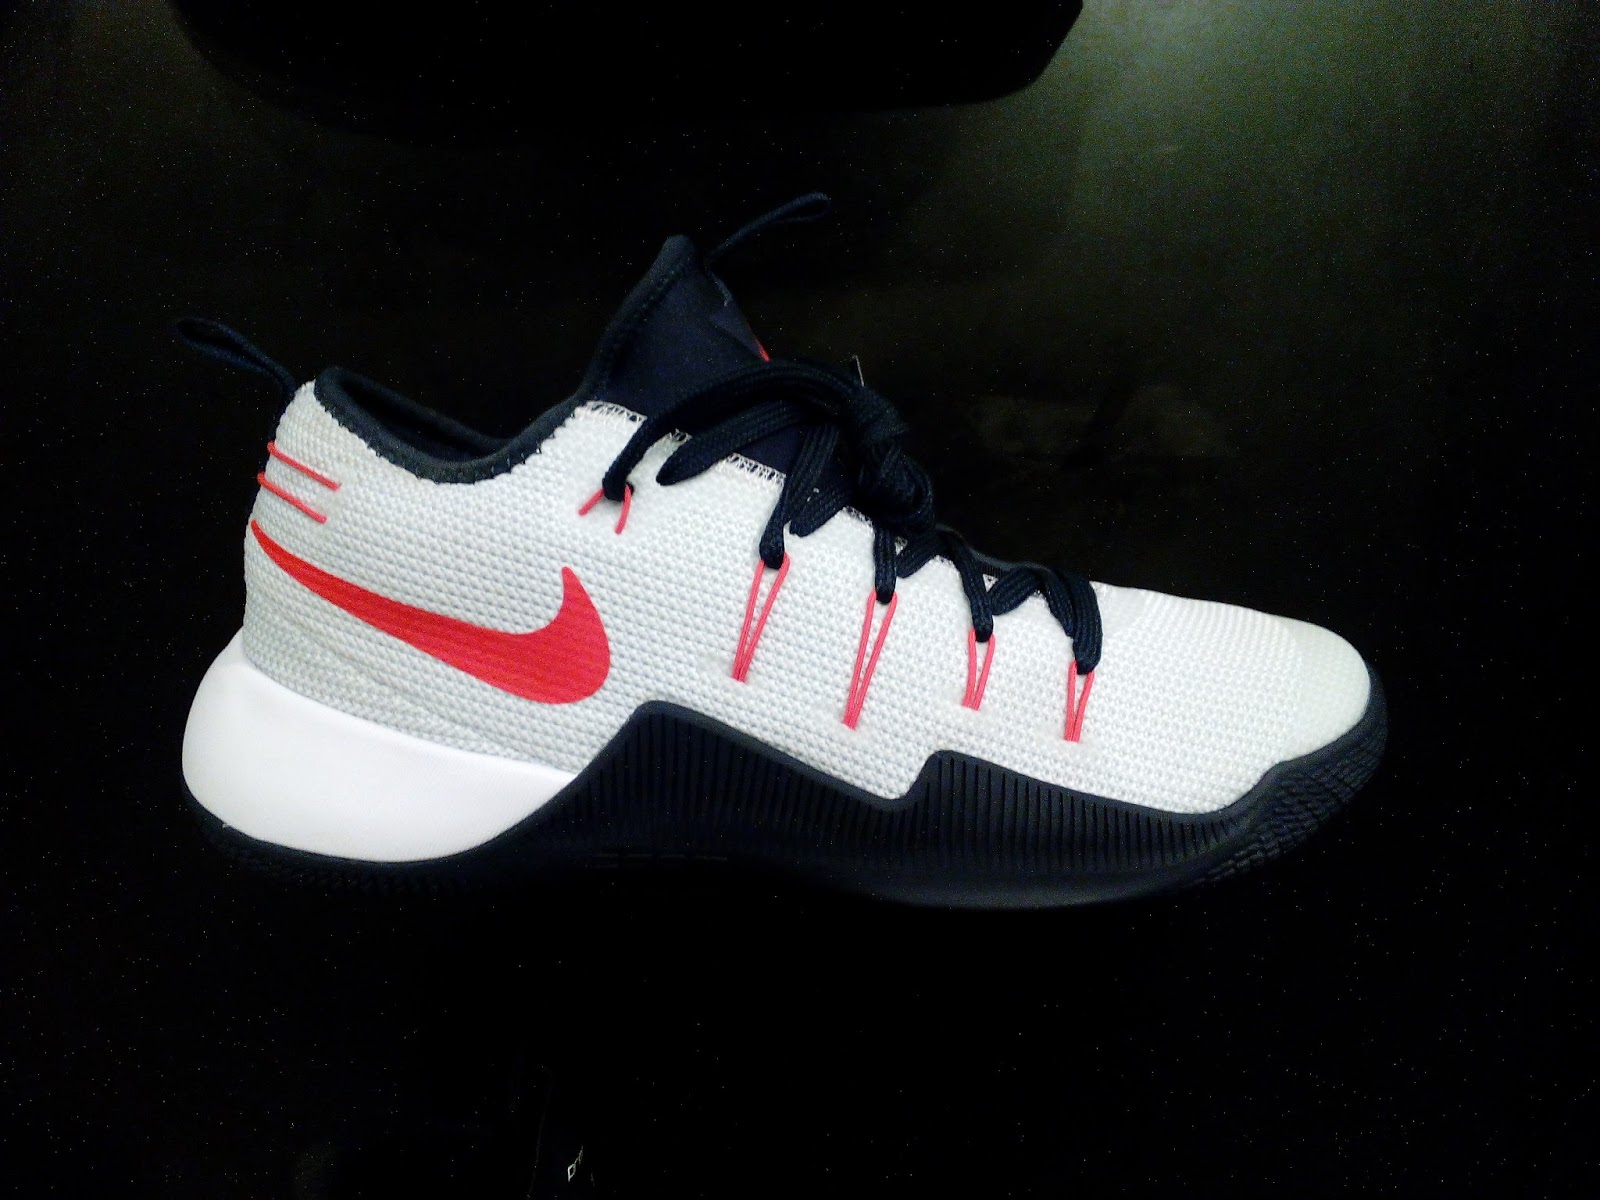 6e57c66e0ce5 low cost nike hypershift available now c2f42 9a8d6